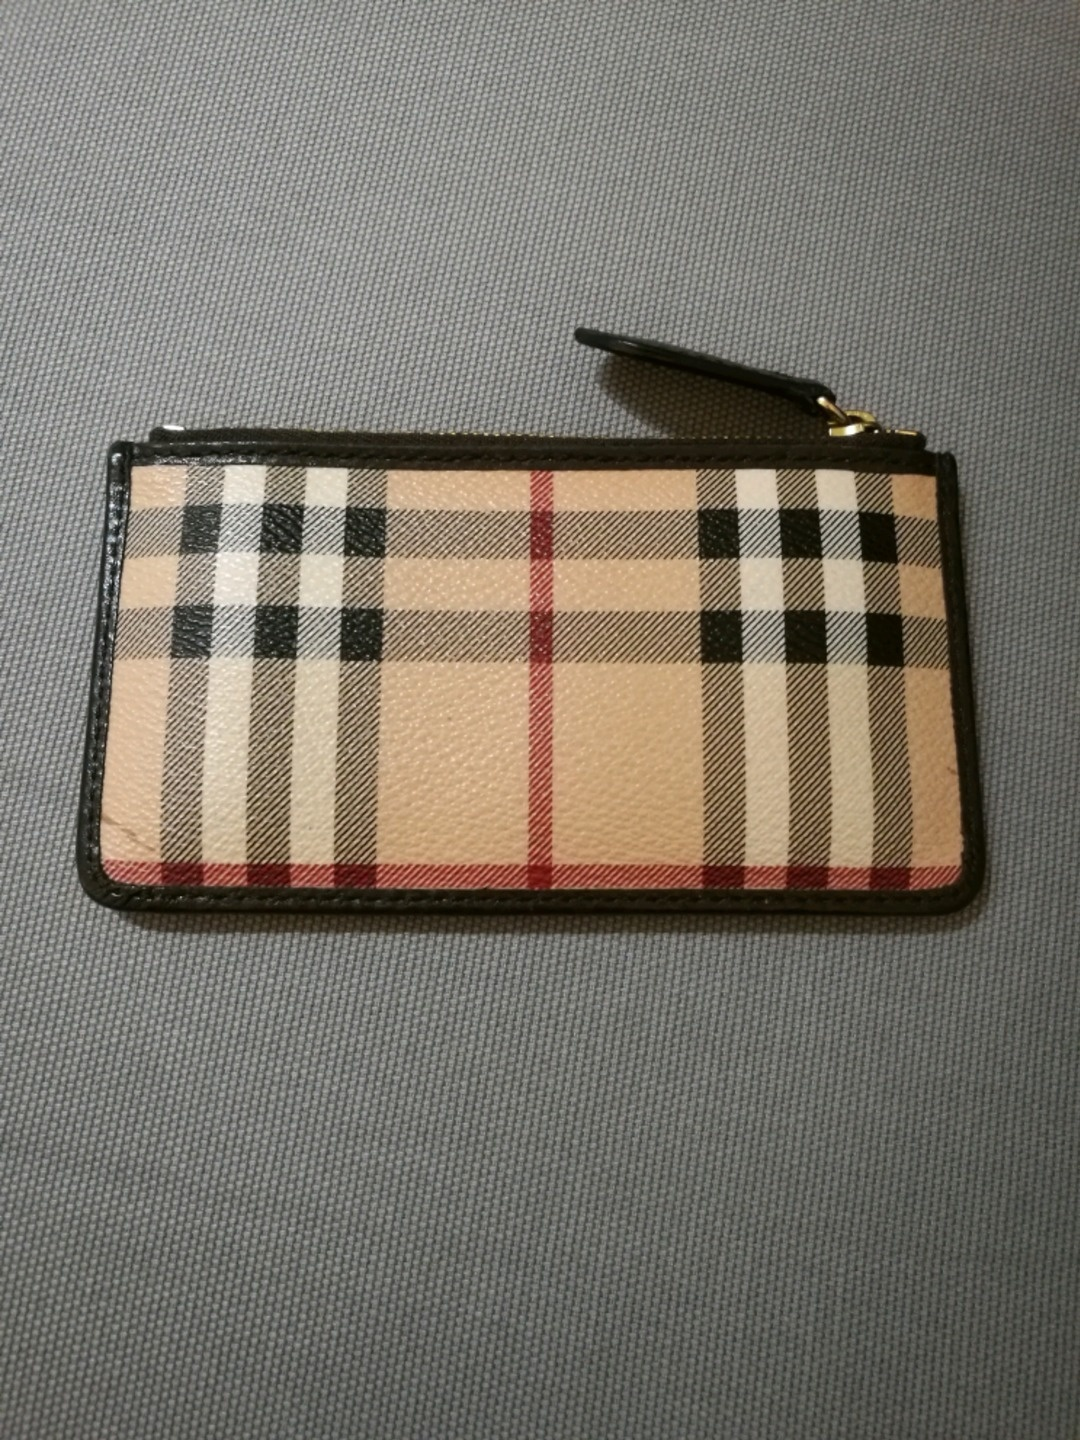 Women's bags & purses - BURBERRY photo 2